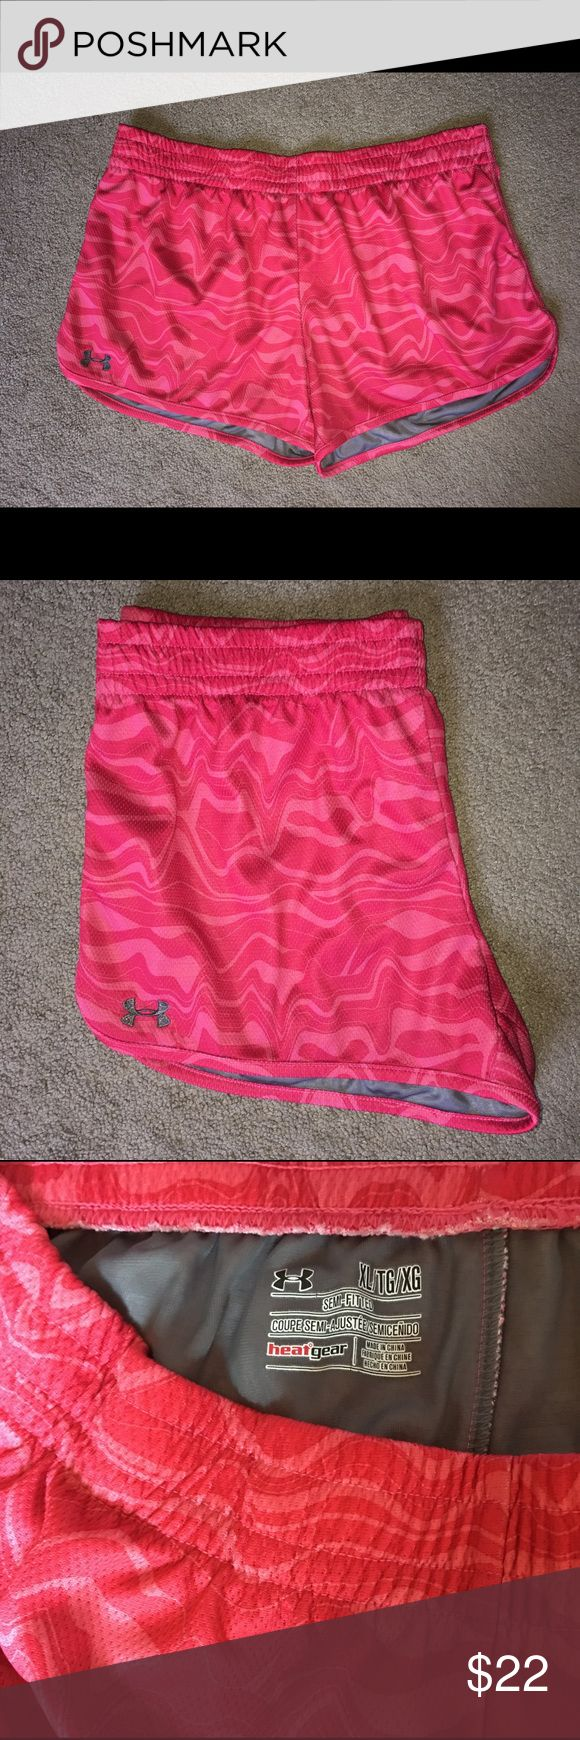 Under Armour Ladies Workout Yoga Running Shorts XL Super Cute! Gently Worn. No Flaws. In Excellent Condition. Under Armour Brand - Heatgear.  Yoga / Workout / Gym / Athletic / Running / Jogging / Casual / 70's Sexy Style Shorts. Women's / Ladies Size - Extra Large XL Colors - Red, Pink & Grey / Gray.  Please FOLLOW ME & check out the other items in my closet. BUNDLE & SAVE! I offer a discount when items are bundled & you only pay shipping one time!! Thank you & Happy Poshing! 🙏🏼❤️ Under…